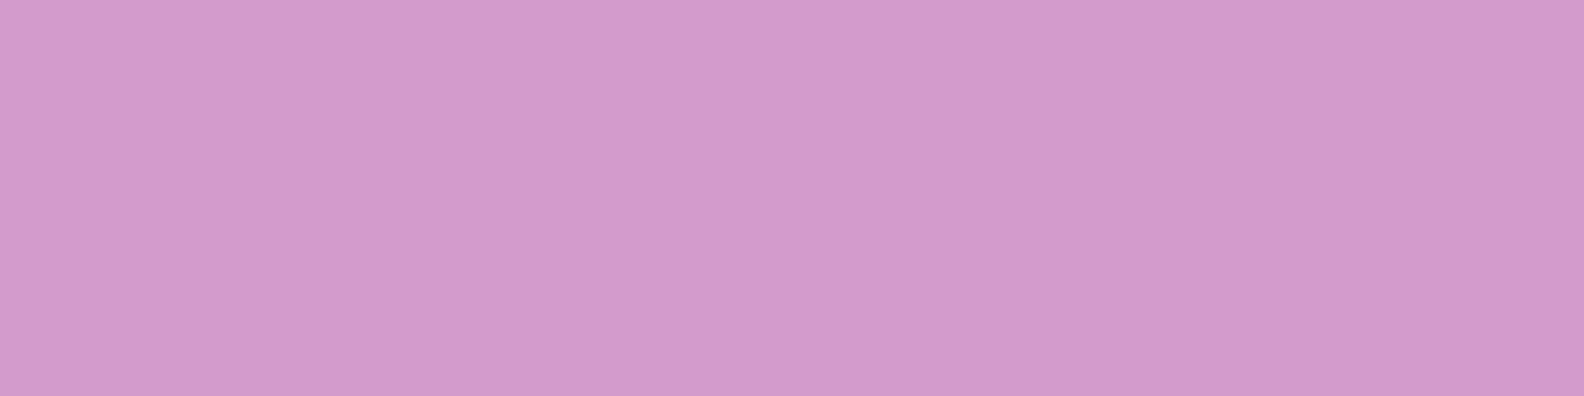 1584x396 Light Medium Orchid Solid Color Background